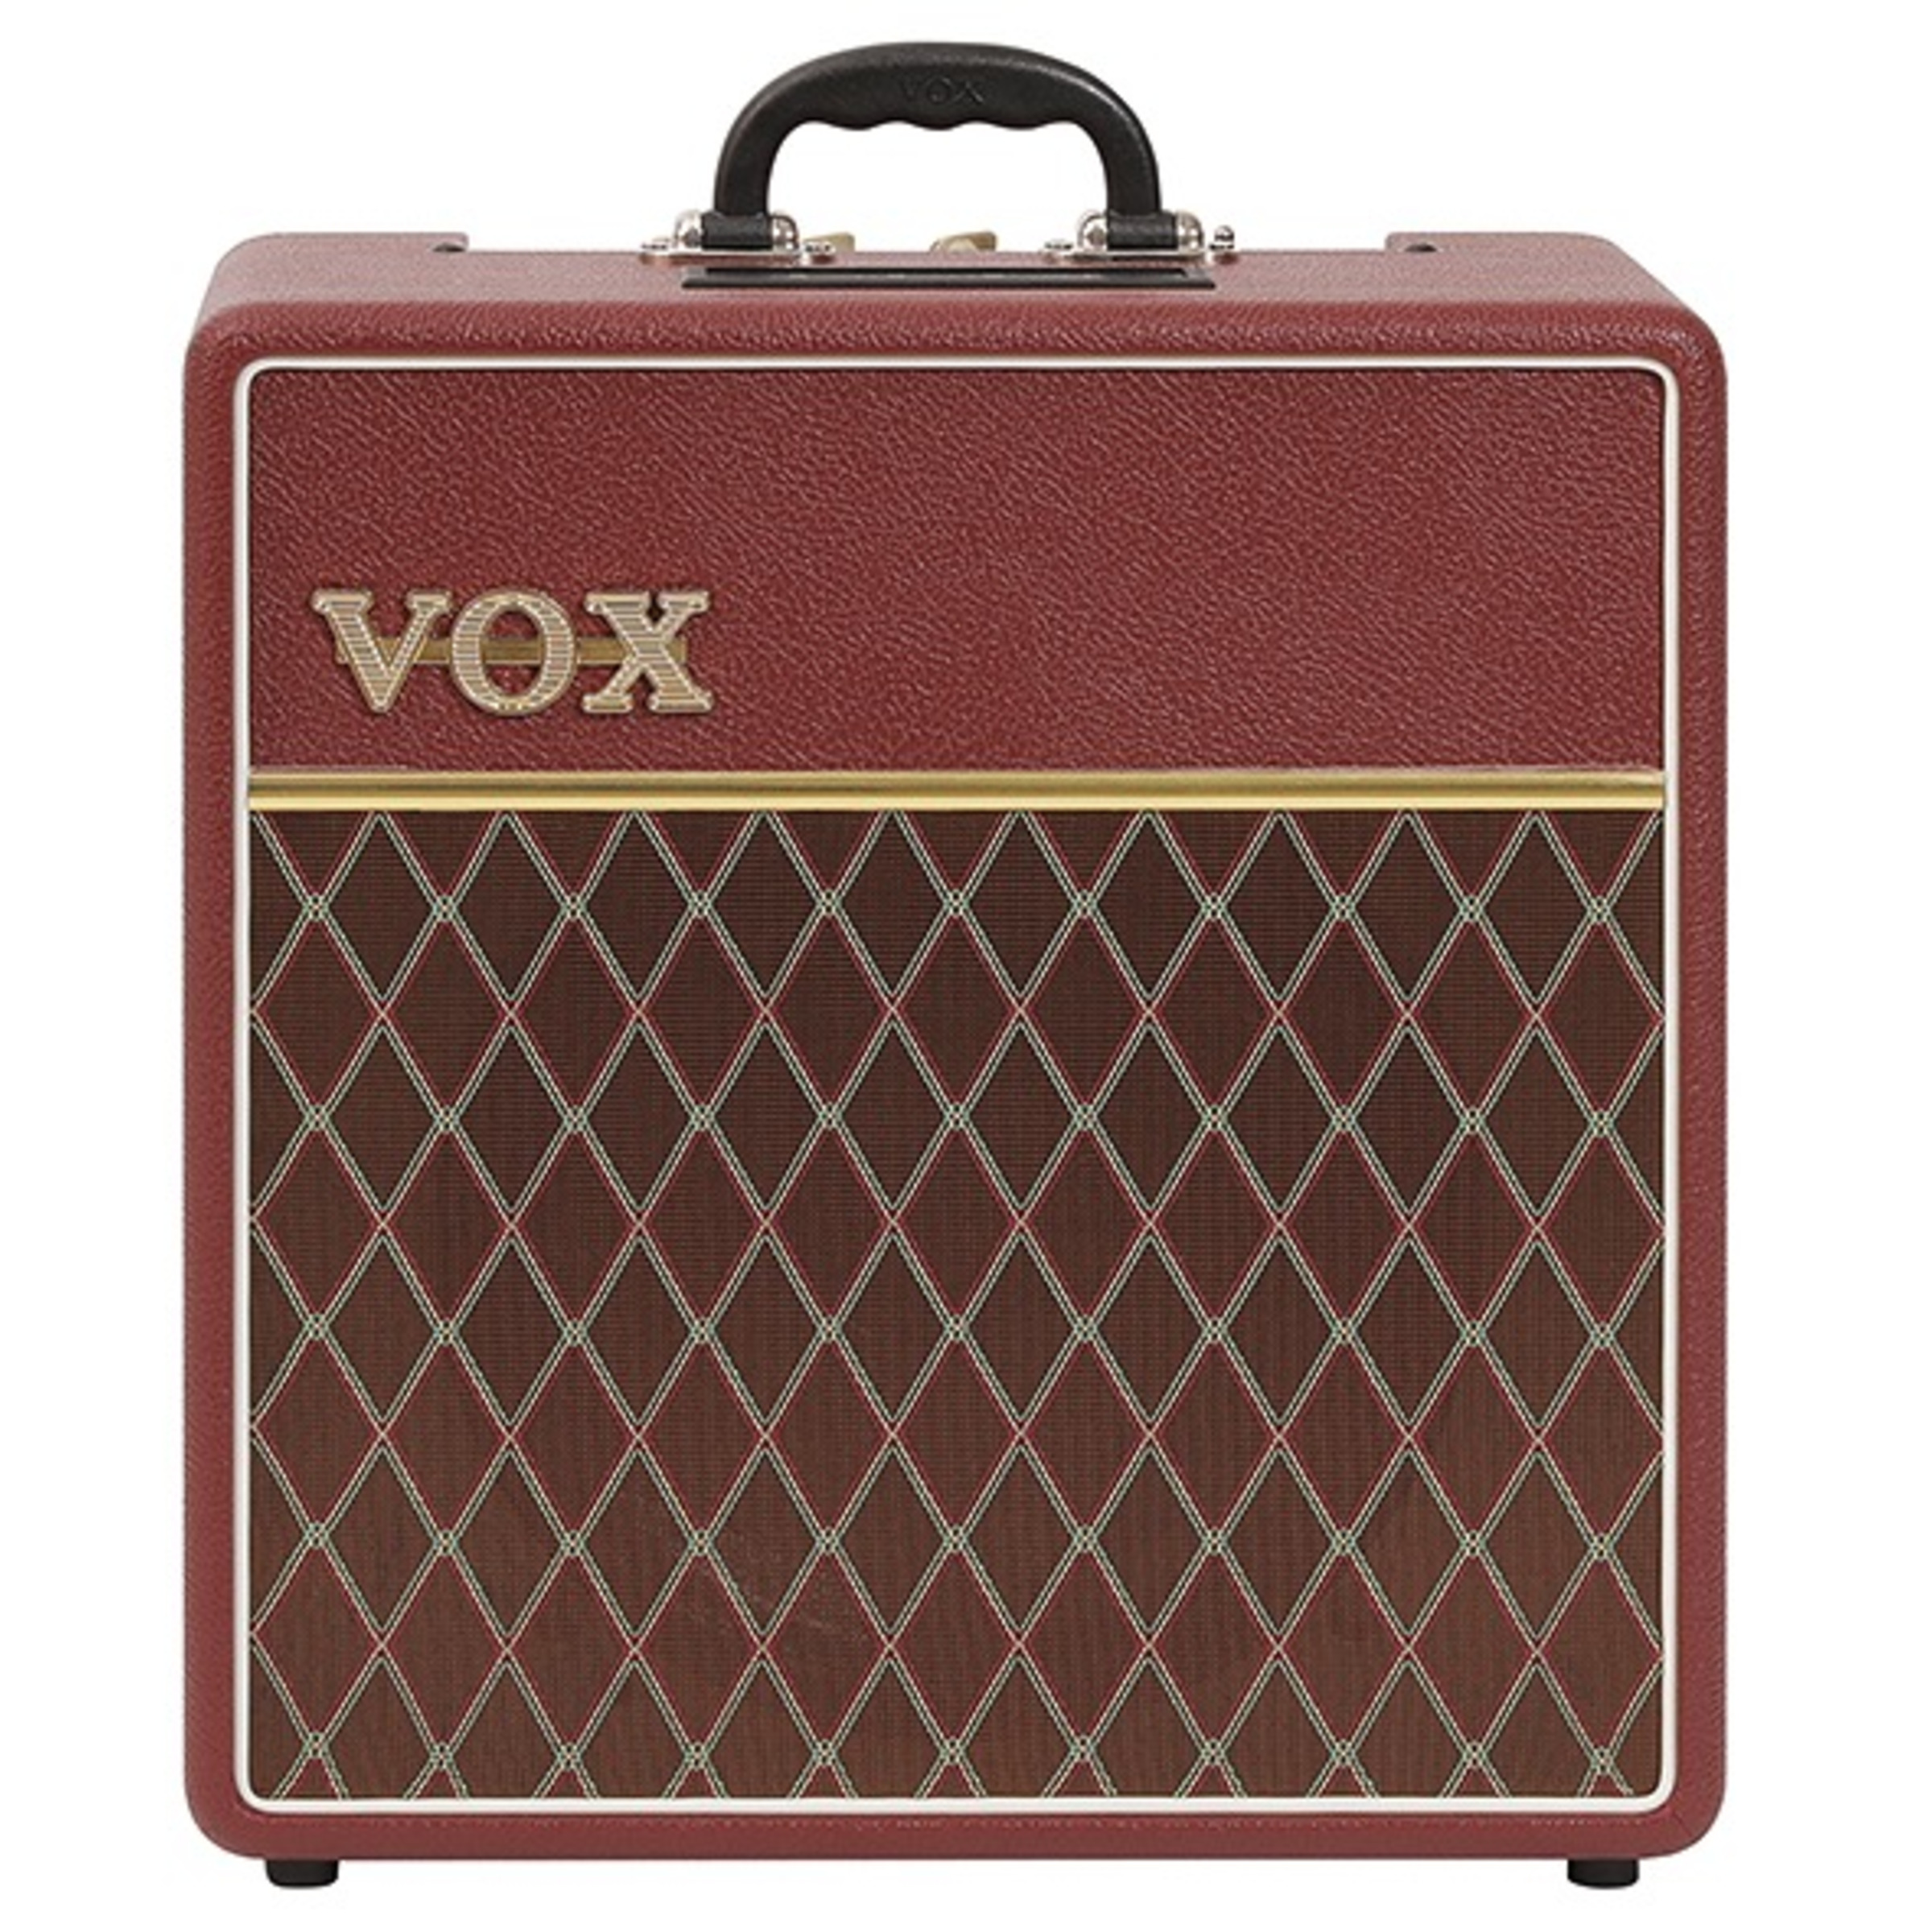 vox limited edition ac4c1 12 guitar combo maroon bronco giggear. Black Bedroom Furniture Sets. Home Design Ideas